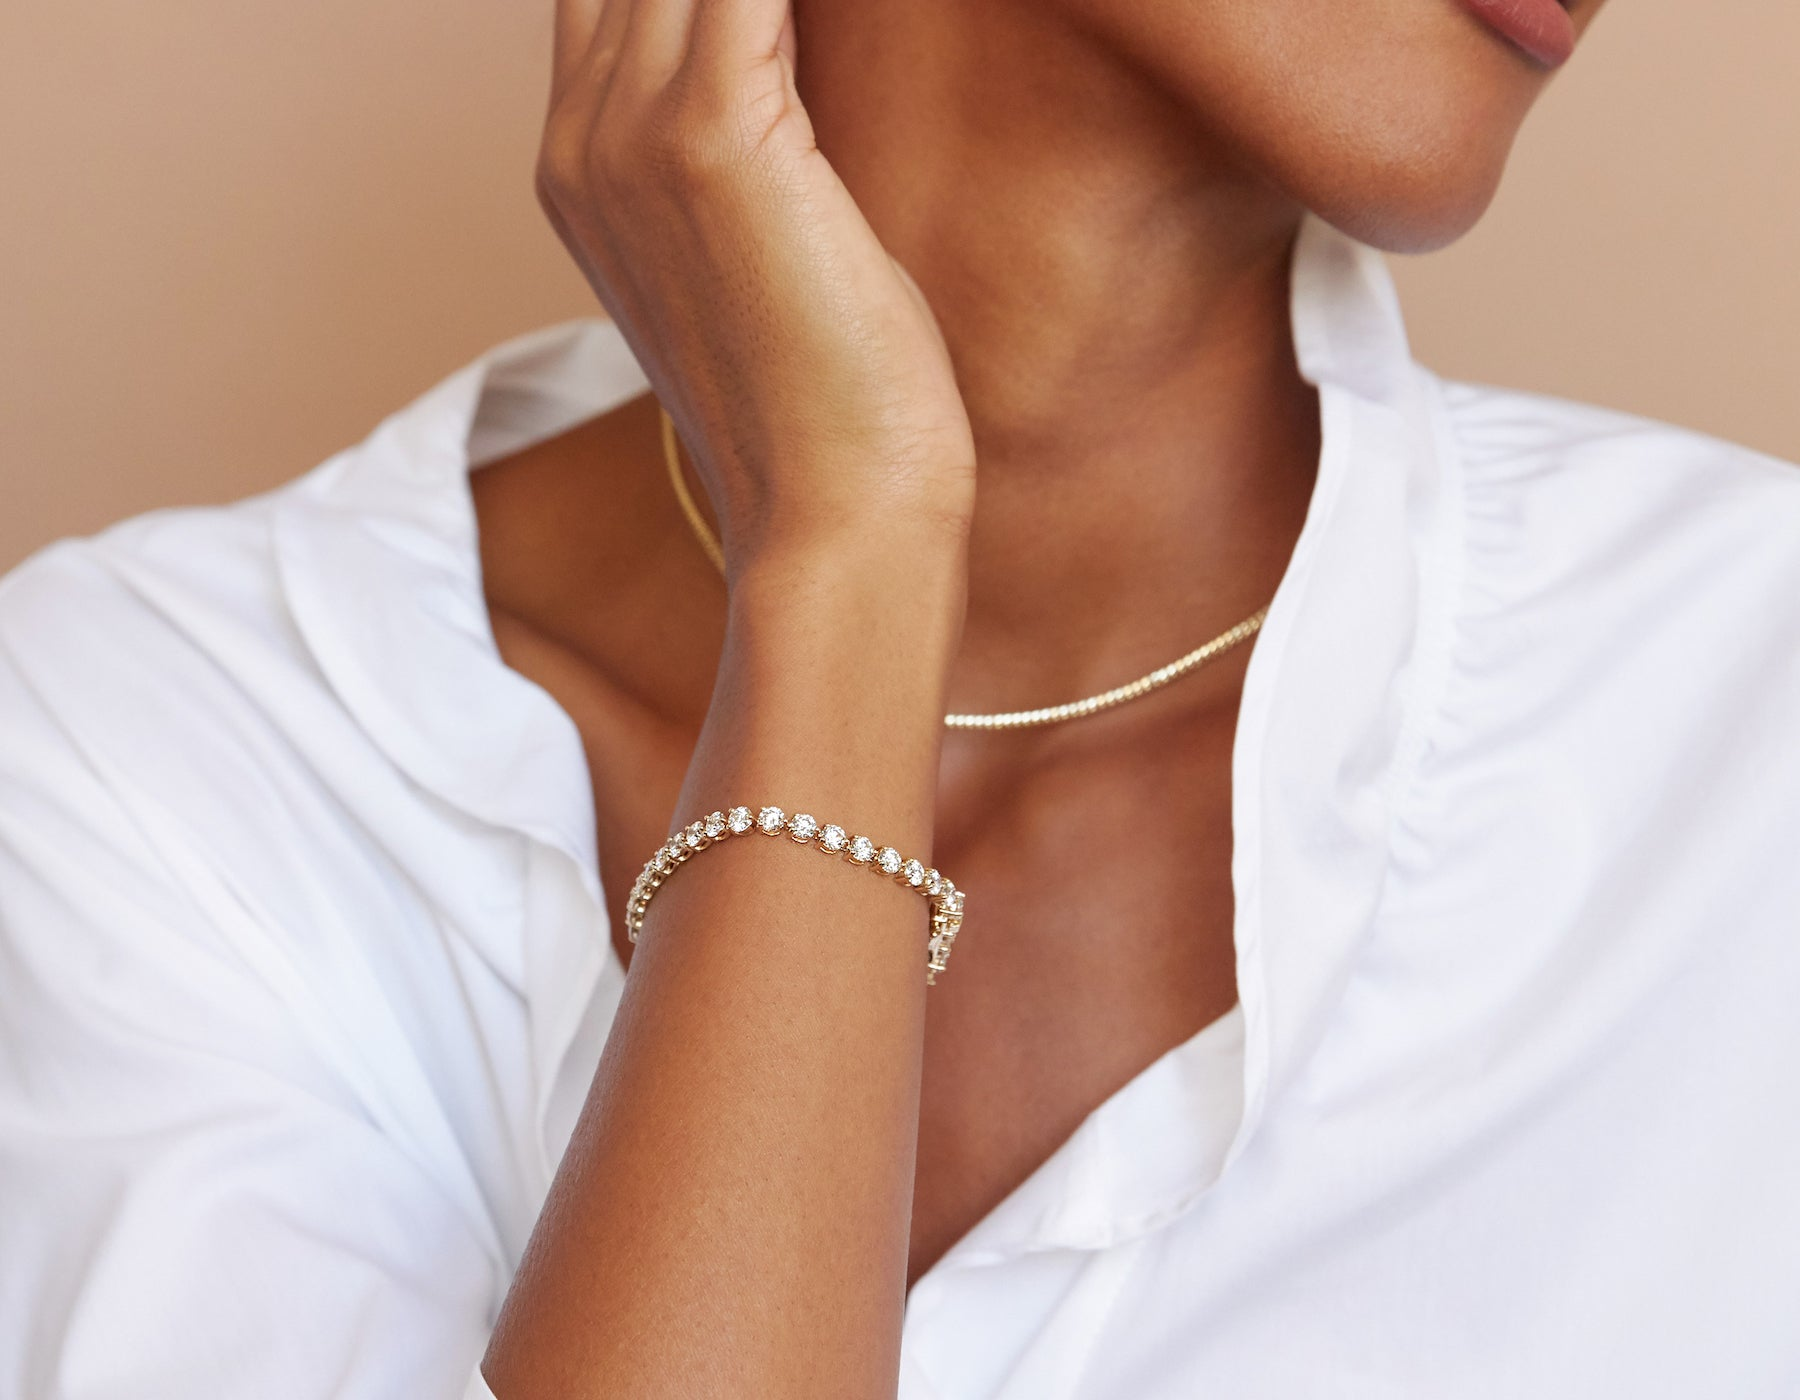 Model wearing elegant minimalist Round Diamond Tennis Bracelet 14k yellow gold, 14K White Gold